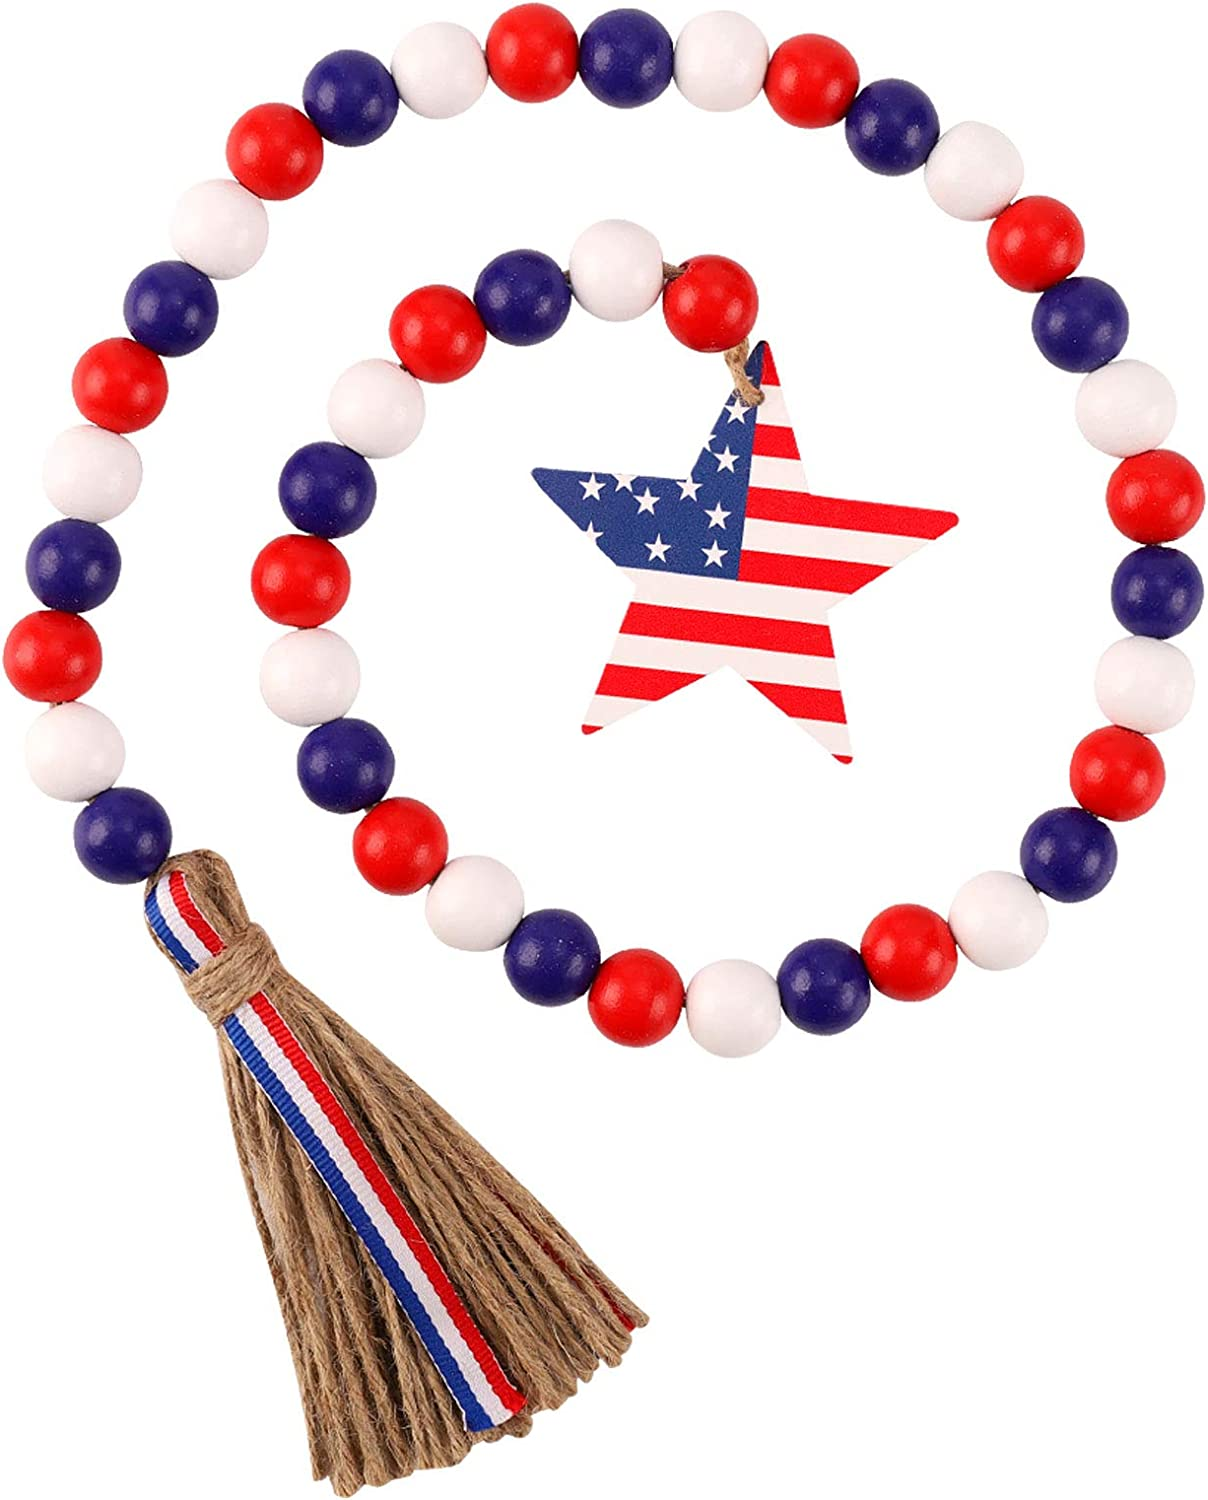 KSPOWWIN Independence Day Wood Bead Garland with American Flag Rustic Tassels, Farmhouse Wall Hanging Ornaments Prayer Beads Patriotic 4th of July for Memorial Day Decor